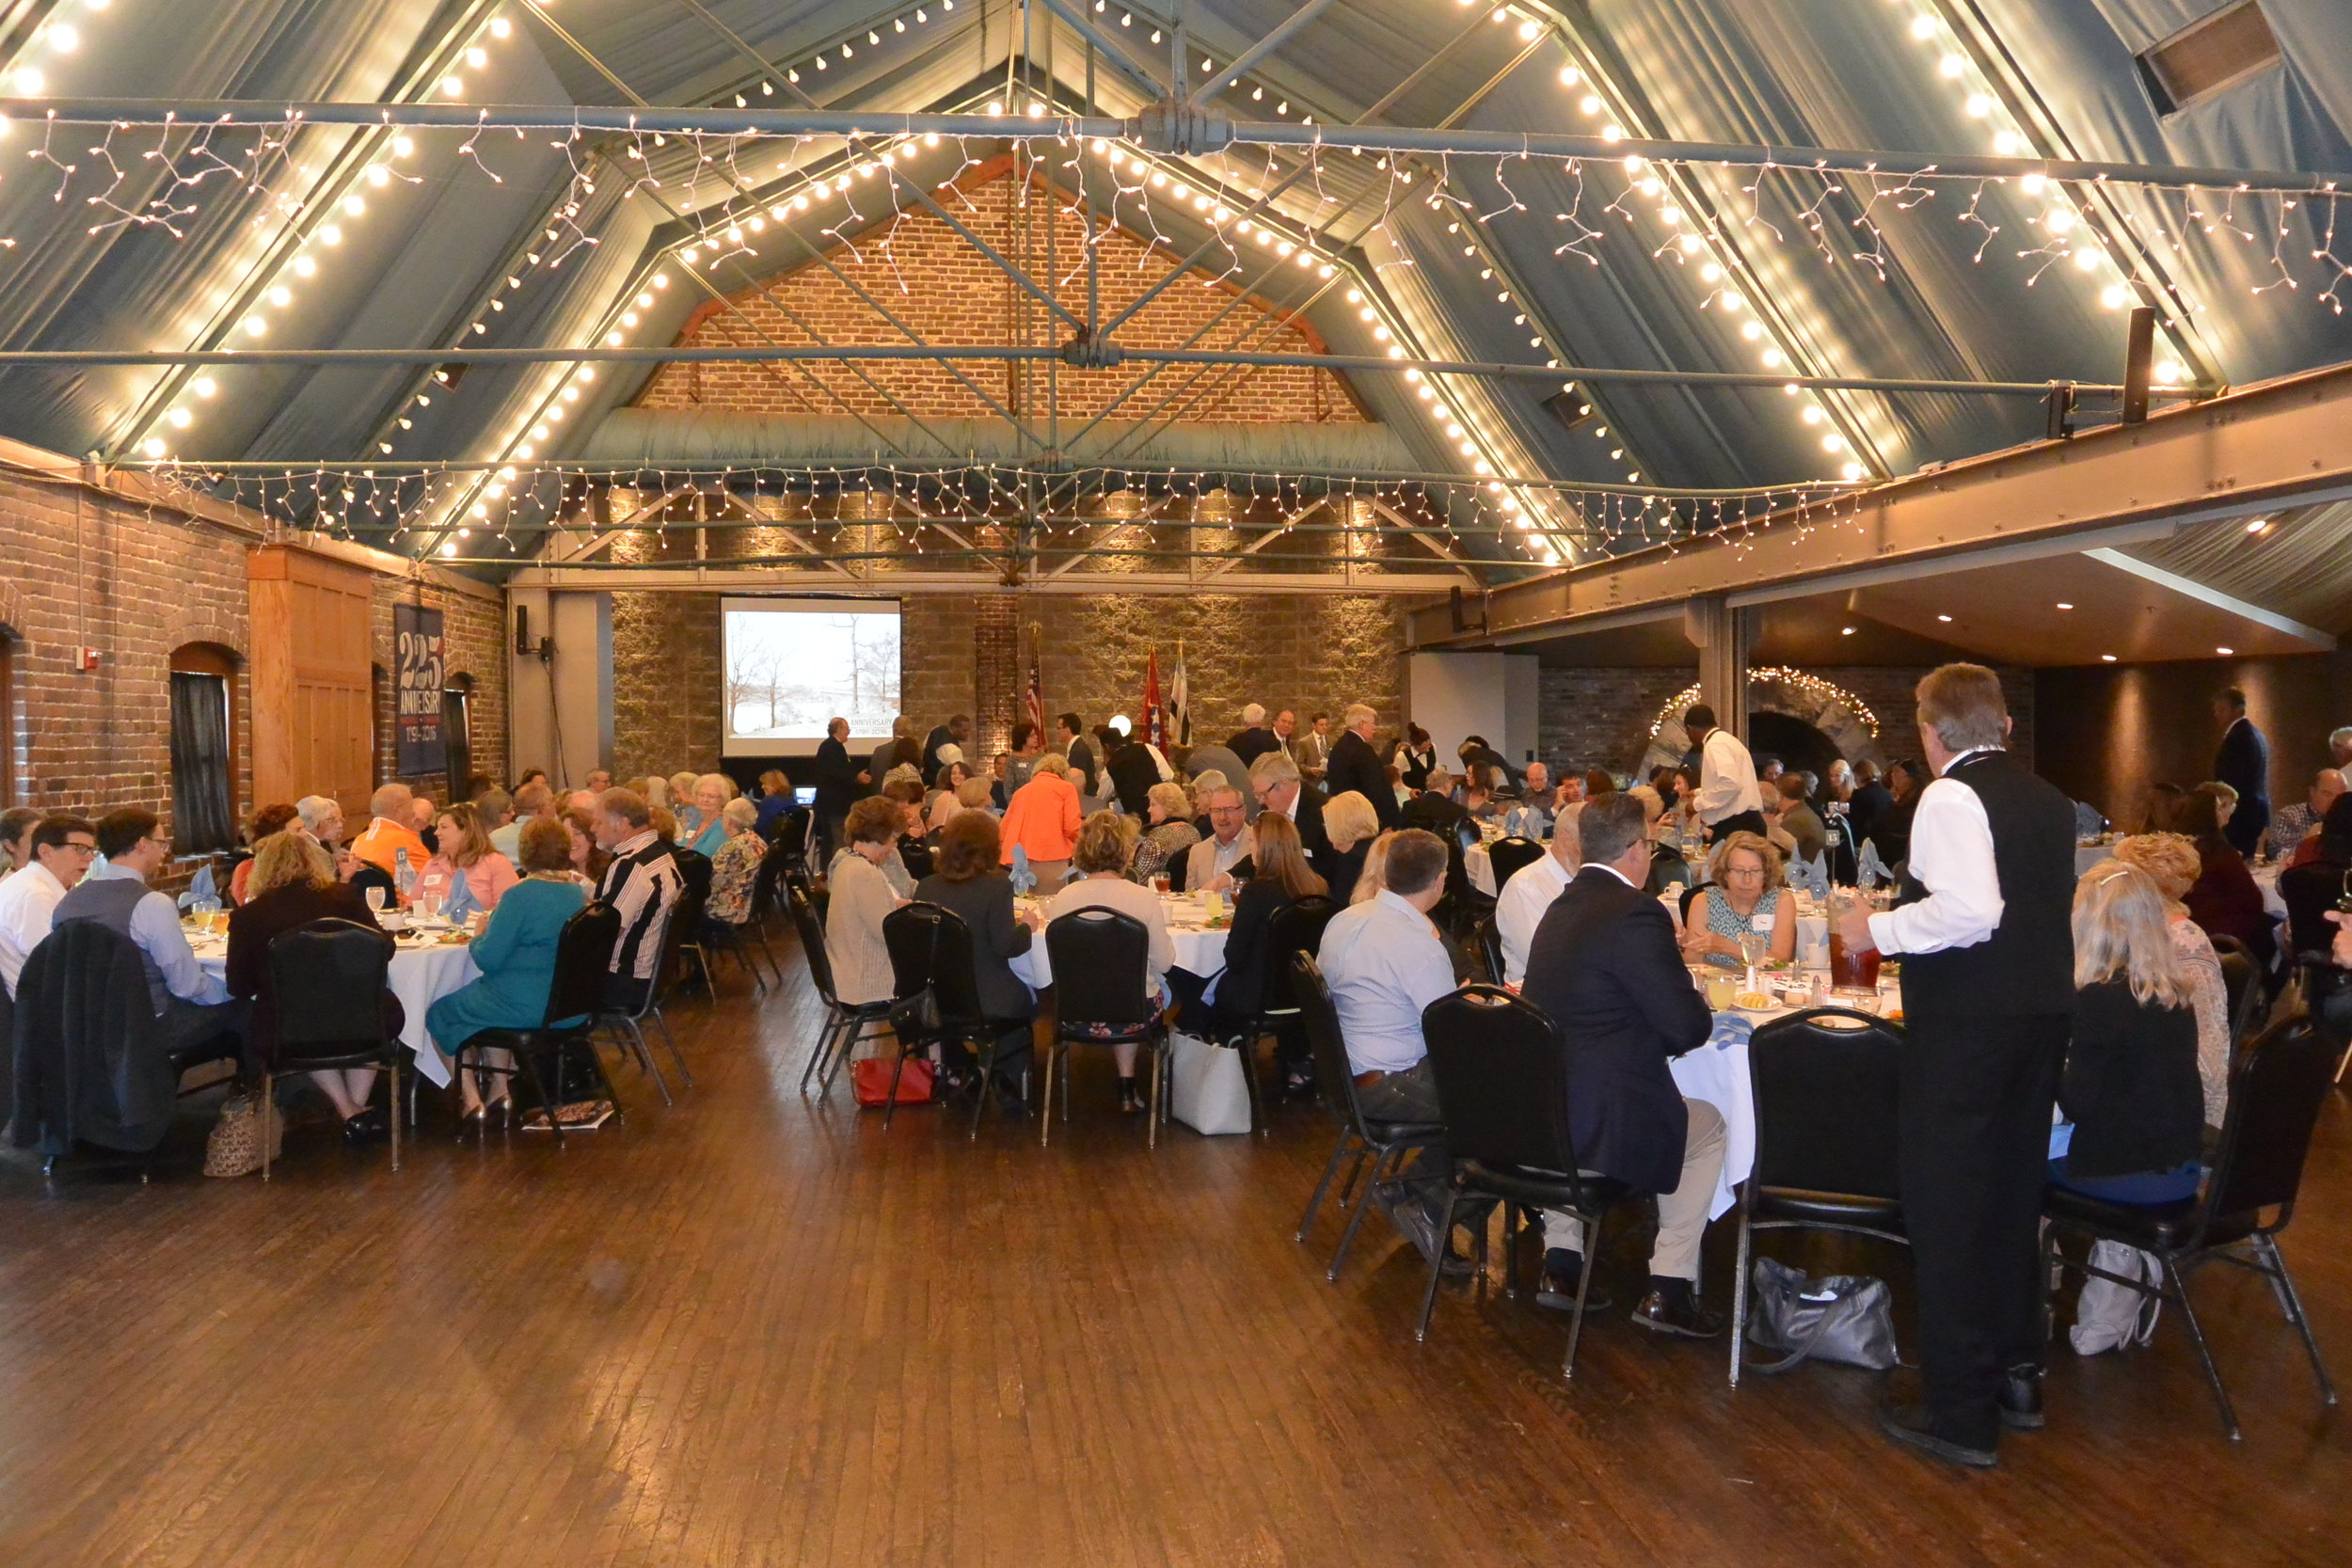 Guests gather for lunch during the 225th Anniversary of the City of Knoxville.